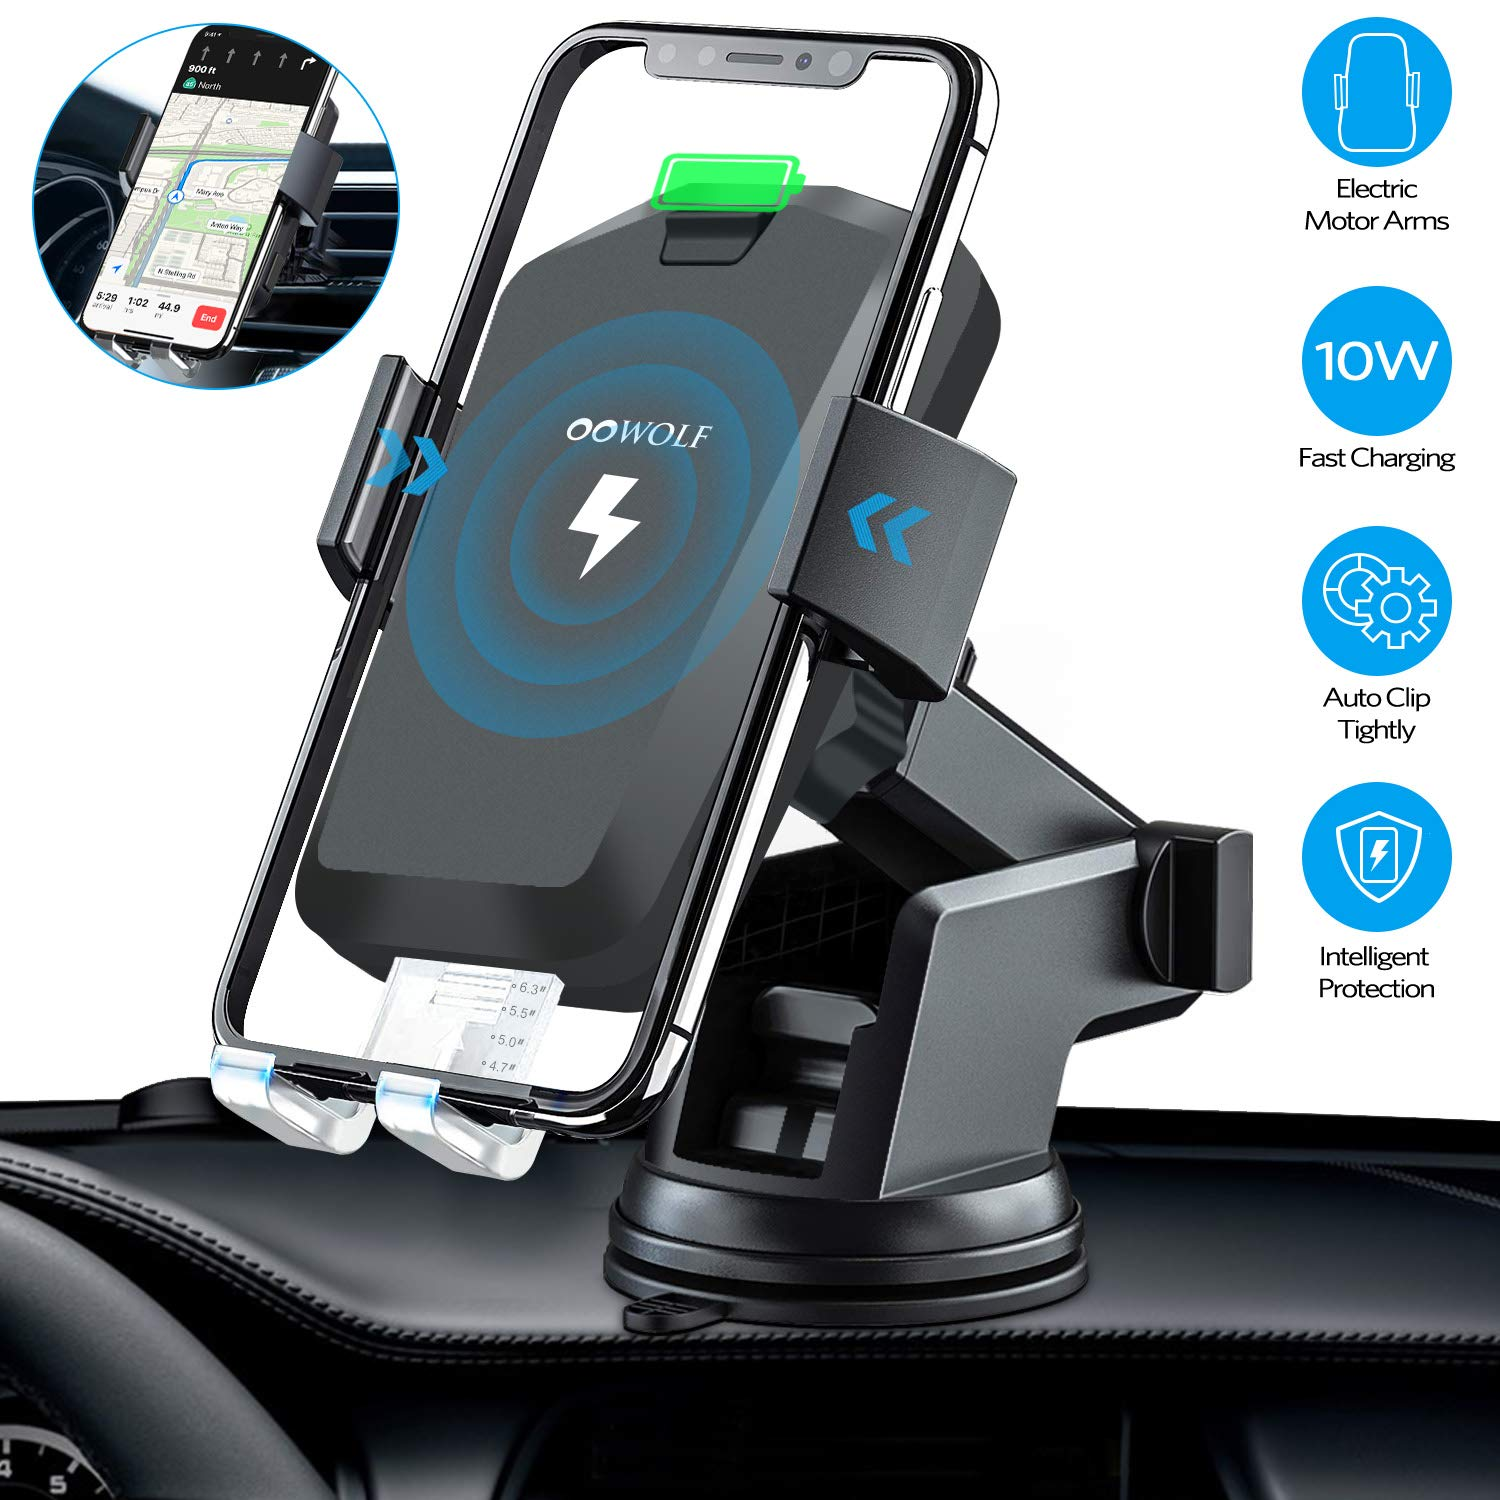 Wireless Car Charger Mount, OOWOLF 10W 7.5W Automatic Clamping Qi Fast Charging Car Mount Windshield Dashboard Air Vent Phone Holder Compatible with iPhone Xs Max XR X 8, Samsung Galaxy S10 S9 S8 Note by OOWOLF